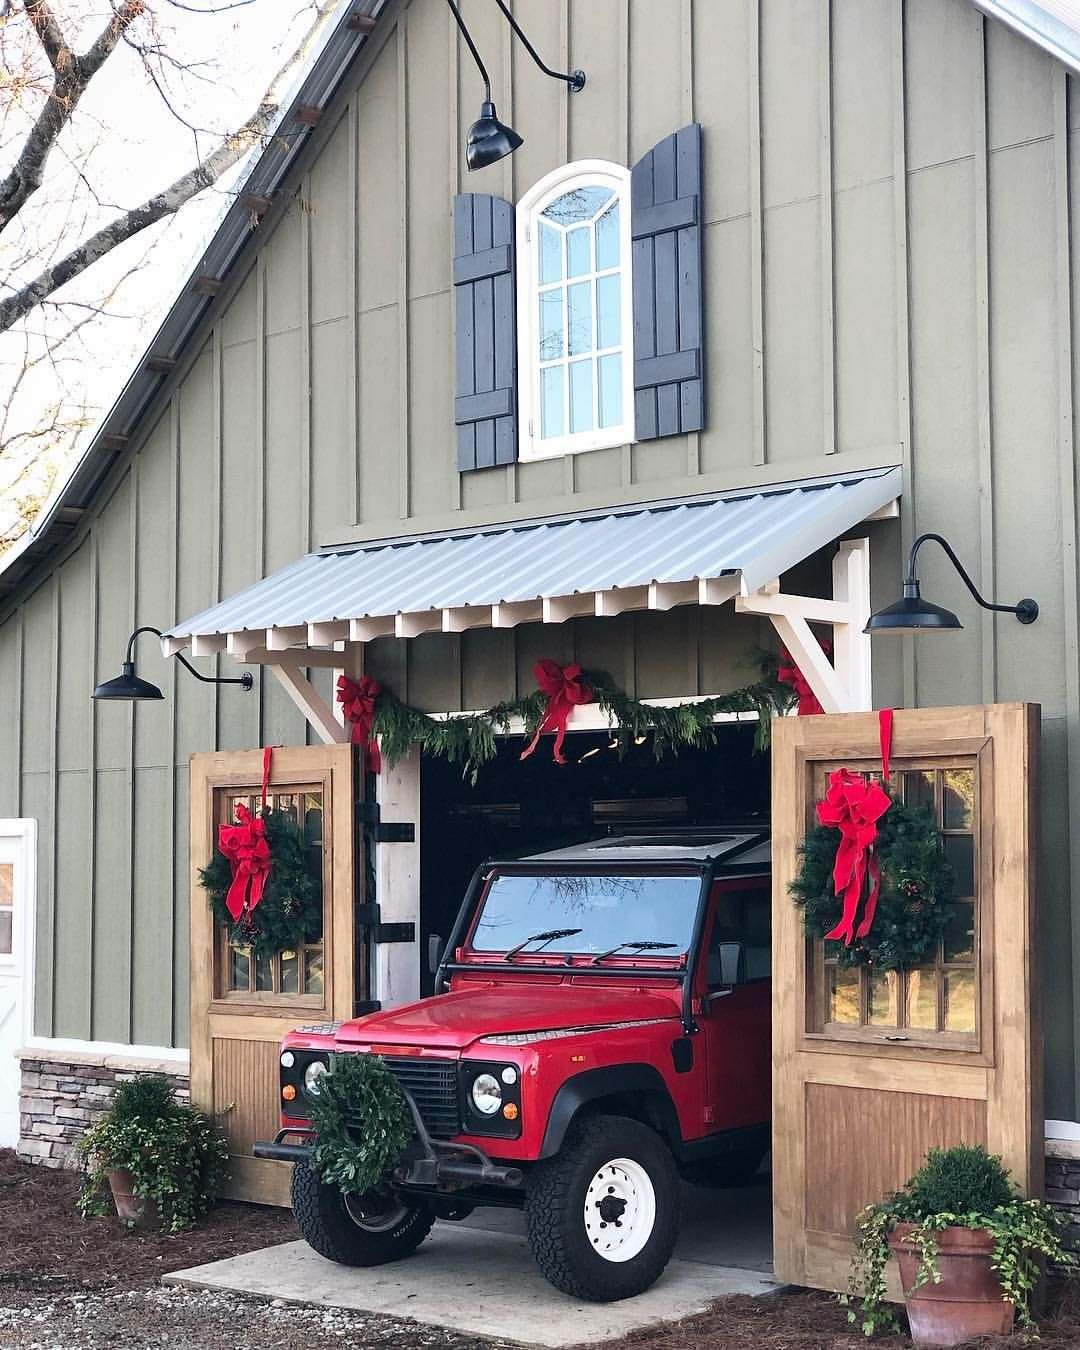 The Barn Looks Even Cuter Dressed Up For Christmas This Year With The New Awning Jeffrey Added And Red Rover Looks Pretty House Awnings Red Barn House Awning